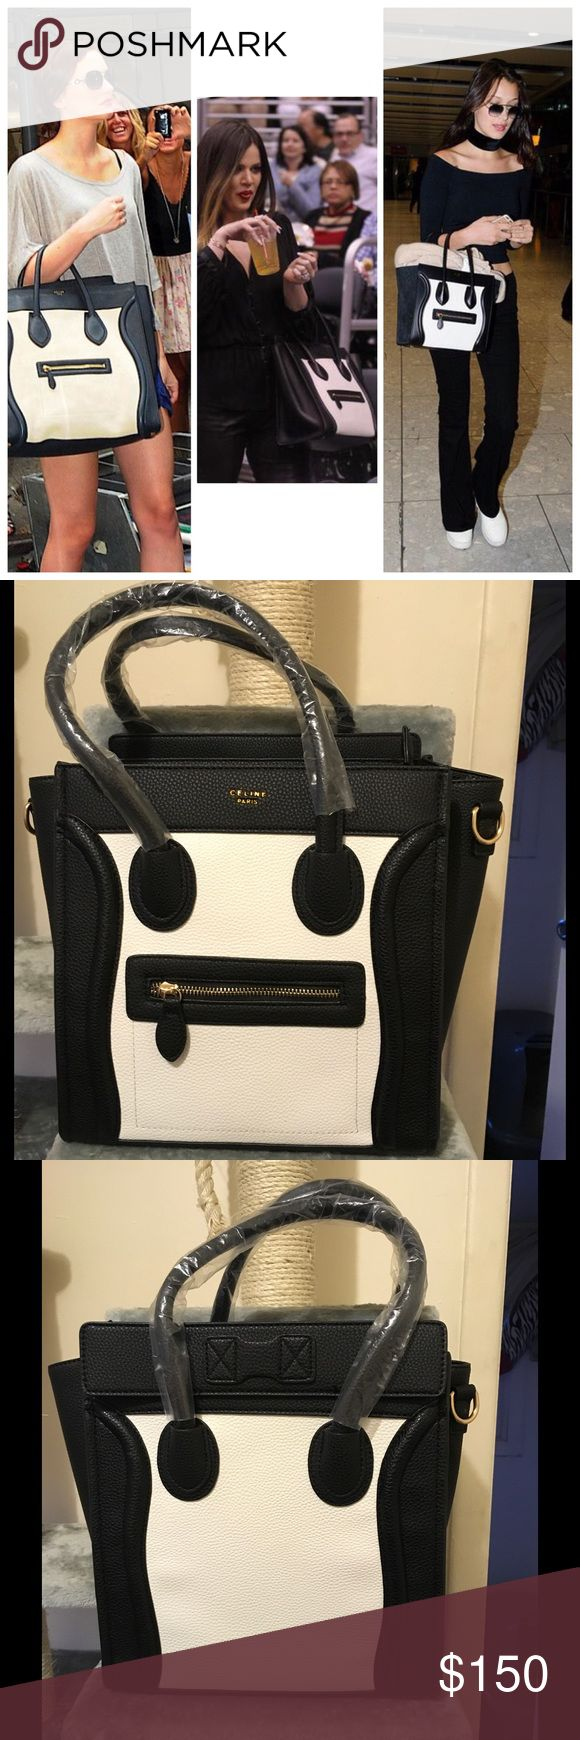 Large Black and White Fashion Bag Comes with logo. Comes with straps. As seen on celebrities such as Rihanna, Nicky Hilton, the Kardashian sisters, Jenner sisters, Hilary Duff, Dakota Fanning, Bella Hadid, Oprah, Miley Cyrus, Nicole Richie, Reese Witherspoon, Rashida Jones, Nicole Kidman, Jennifer Garner, Demi Lovato, Jennifer Lawrence and more!!! *price reflects authenticity* Material of Bag is PU Leather. Bags